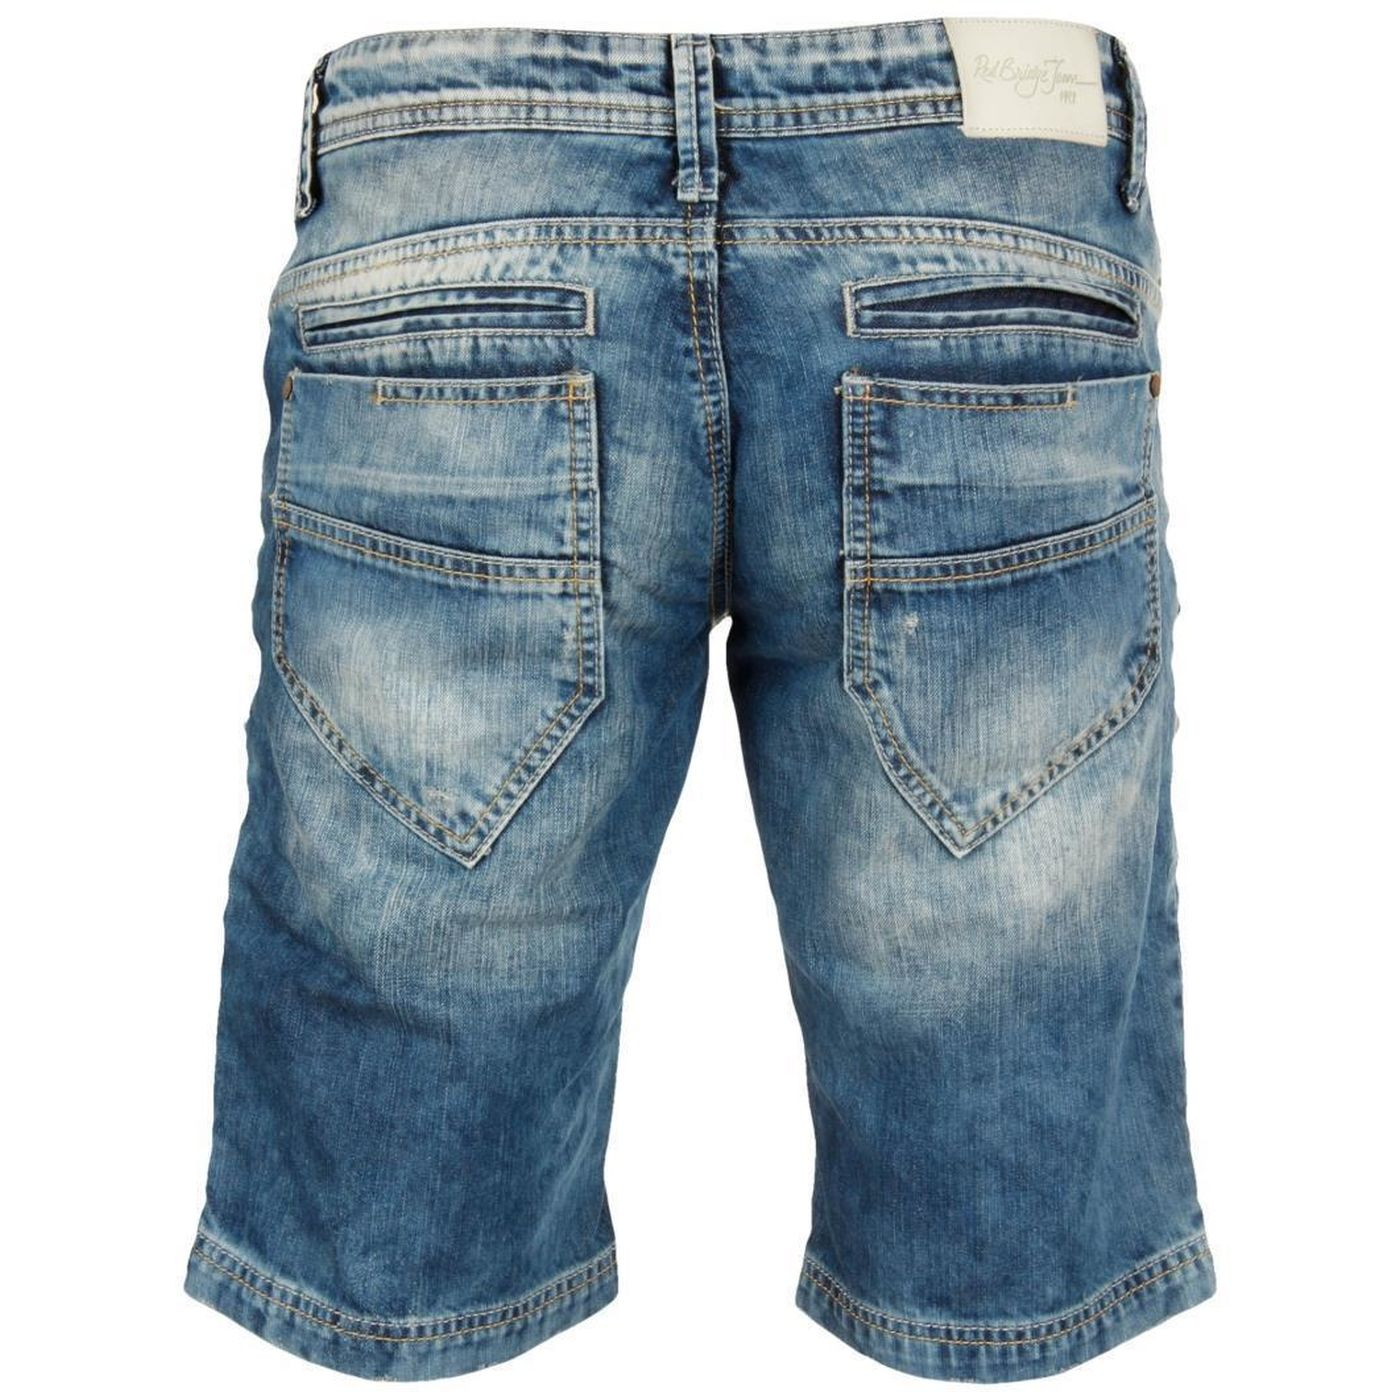 149d34f6511f92 r-31151-denim_red-bridge-herren-keep-back-jeans-shorts-kurze -hose-blau-r-31151~2.jpg